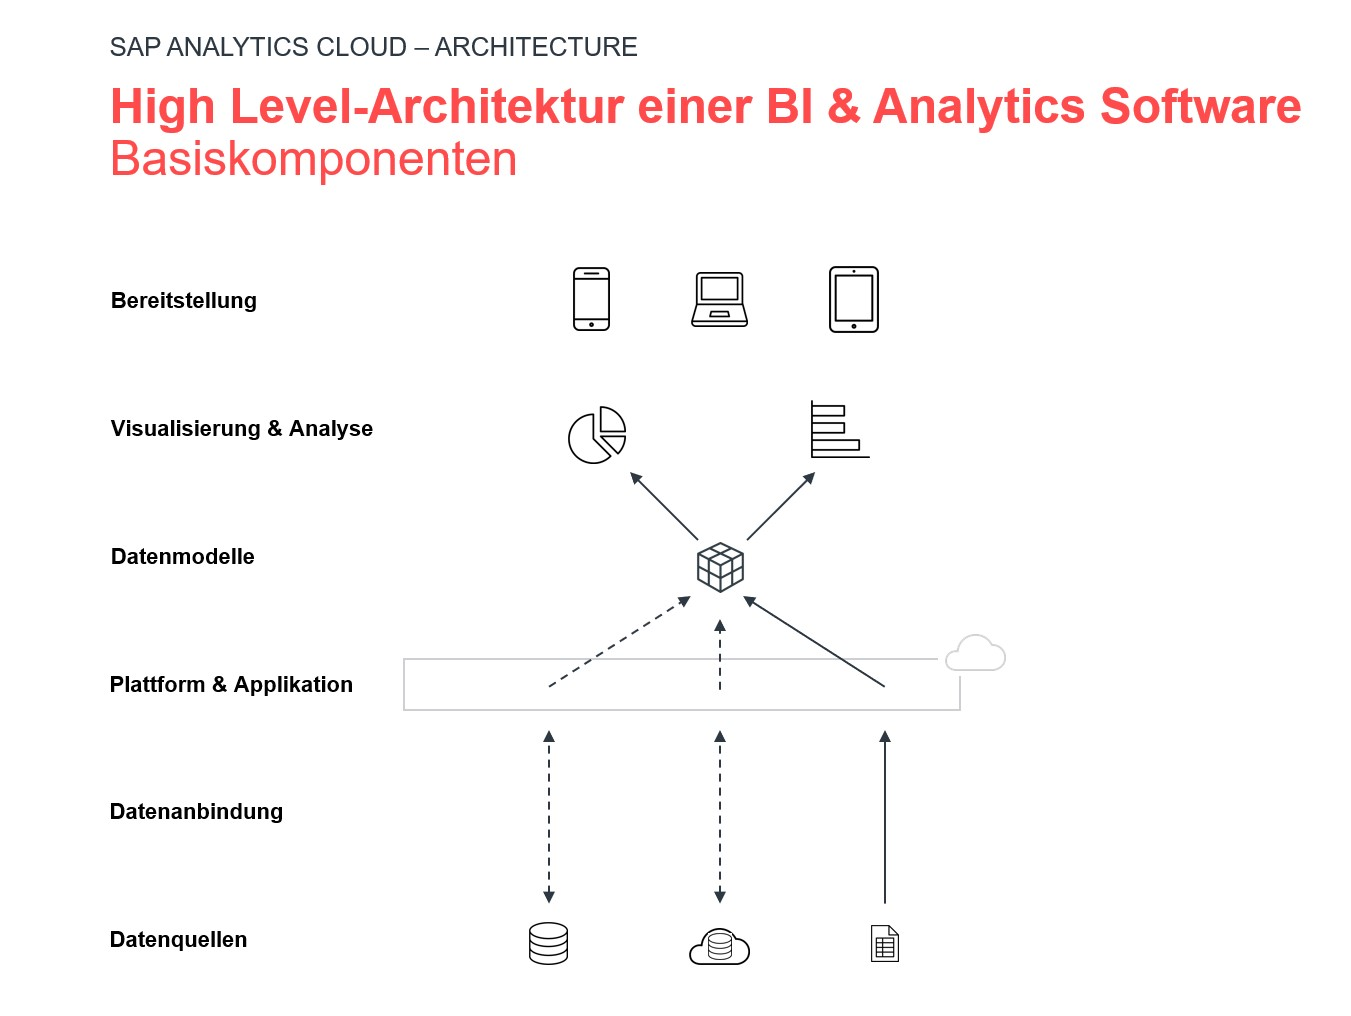 Visualization of the architecture of BI & analytics software